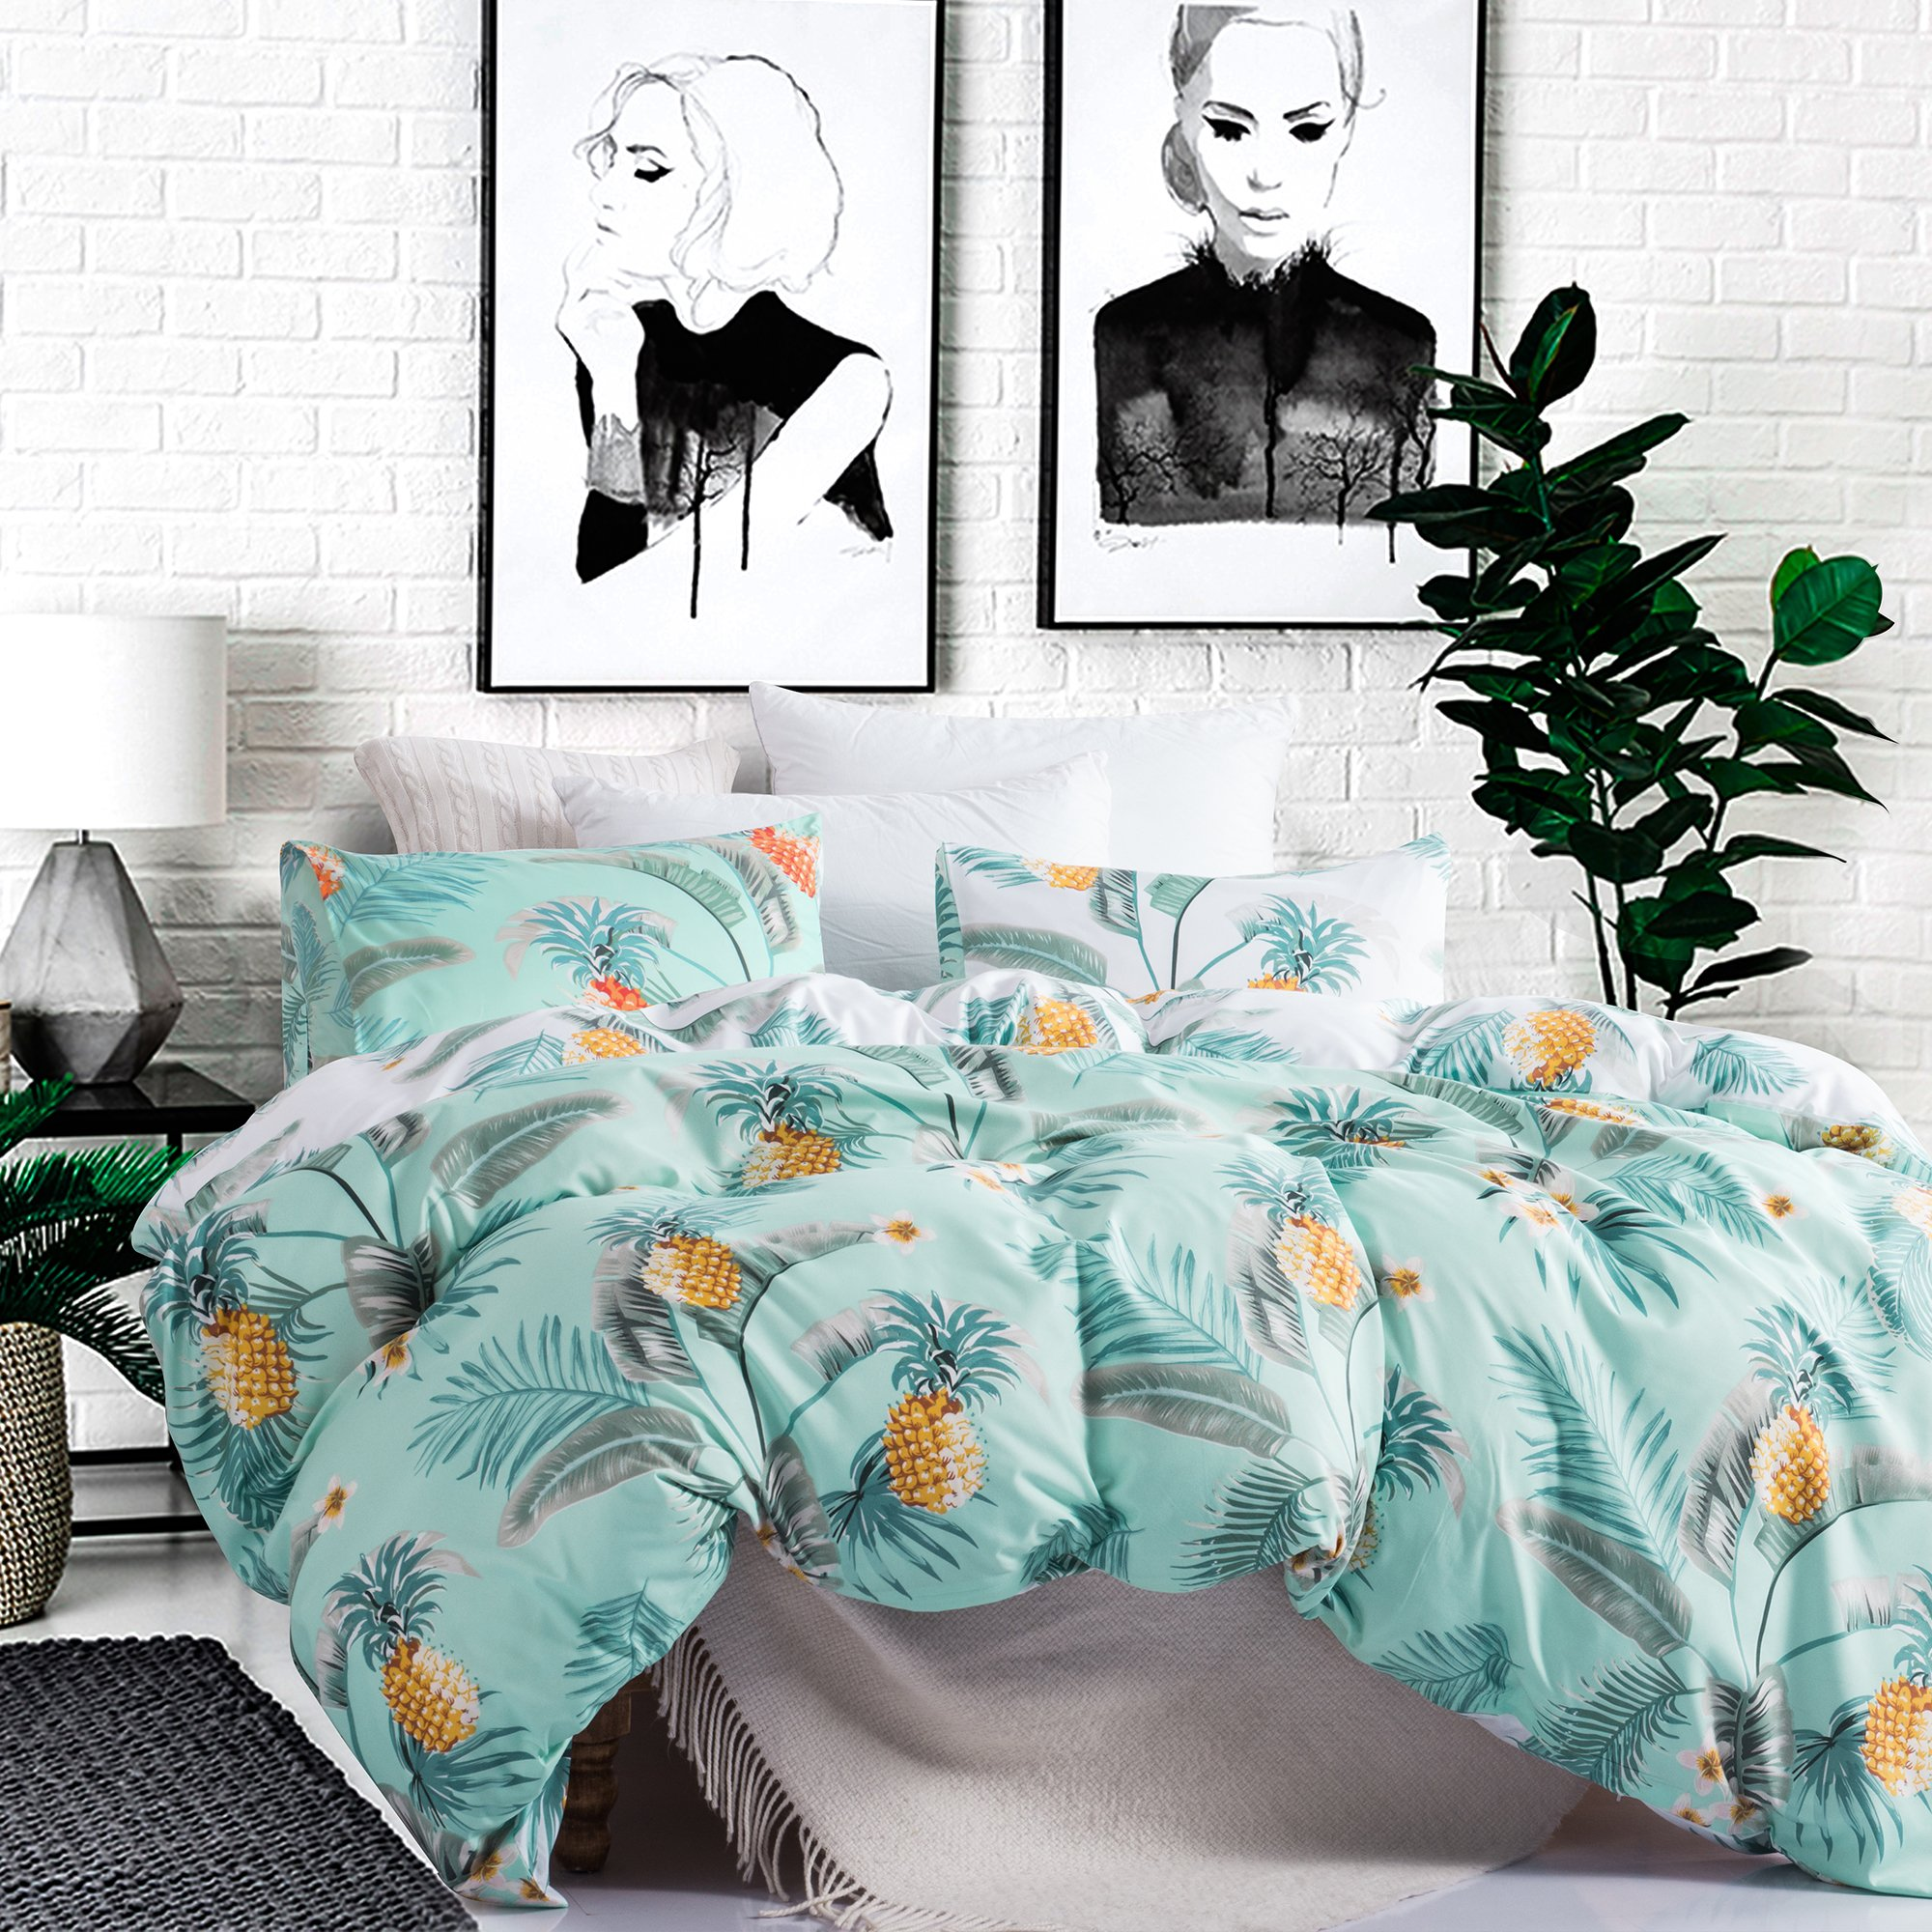 Carisder Microfiber Duvet Cover Set Polyester Bedding Set Girls Floral Bohemia Bed Sheet Set AB Version Pineapple Queen by Carisder